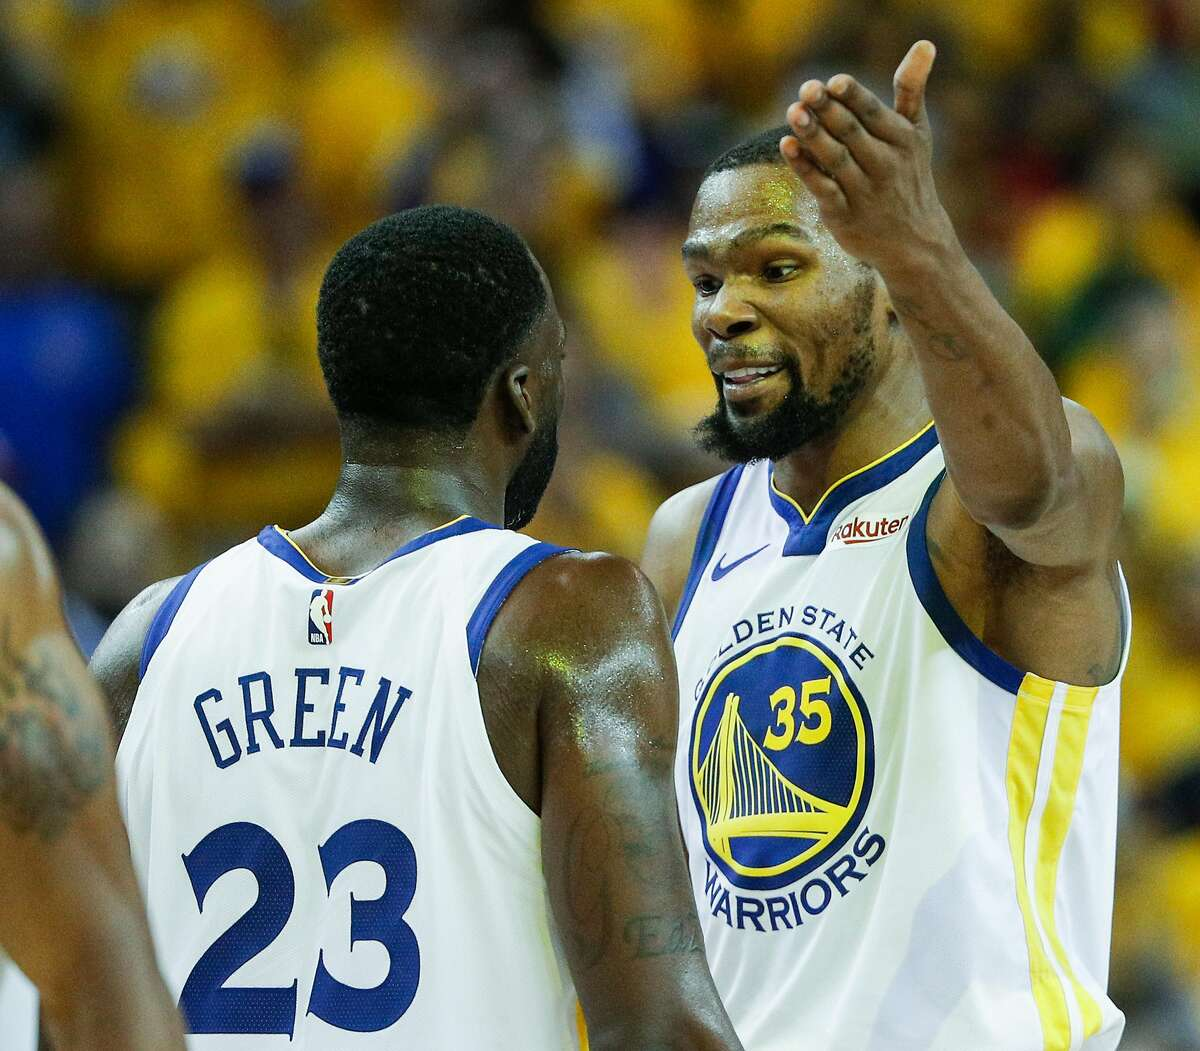 Golden State Warriors Kevin Durant and Draymond Green react after a Durant dunk in the third quarter during game 1 of the Western Conference Semifinals between the Golden State Warriors and the Houston Rockets at Oracle Arena on Sunday, April 28, 2019 in Oakland, Calif.